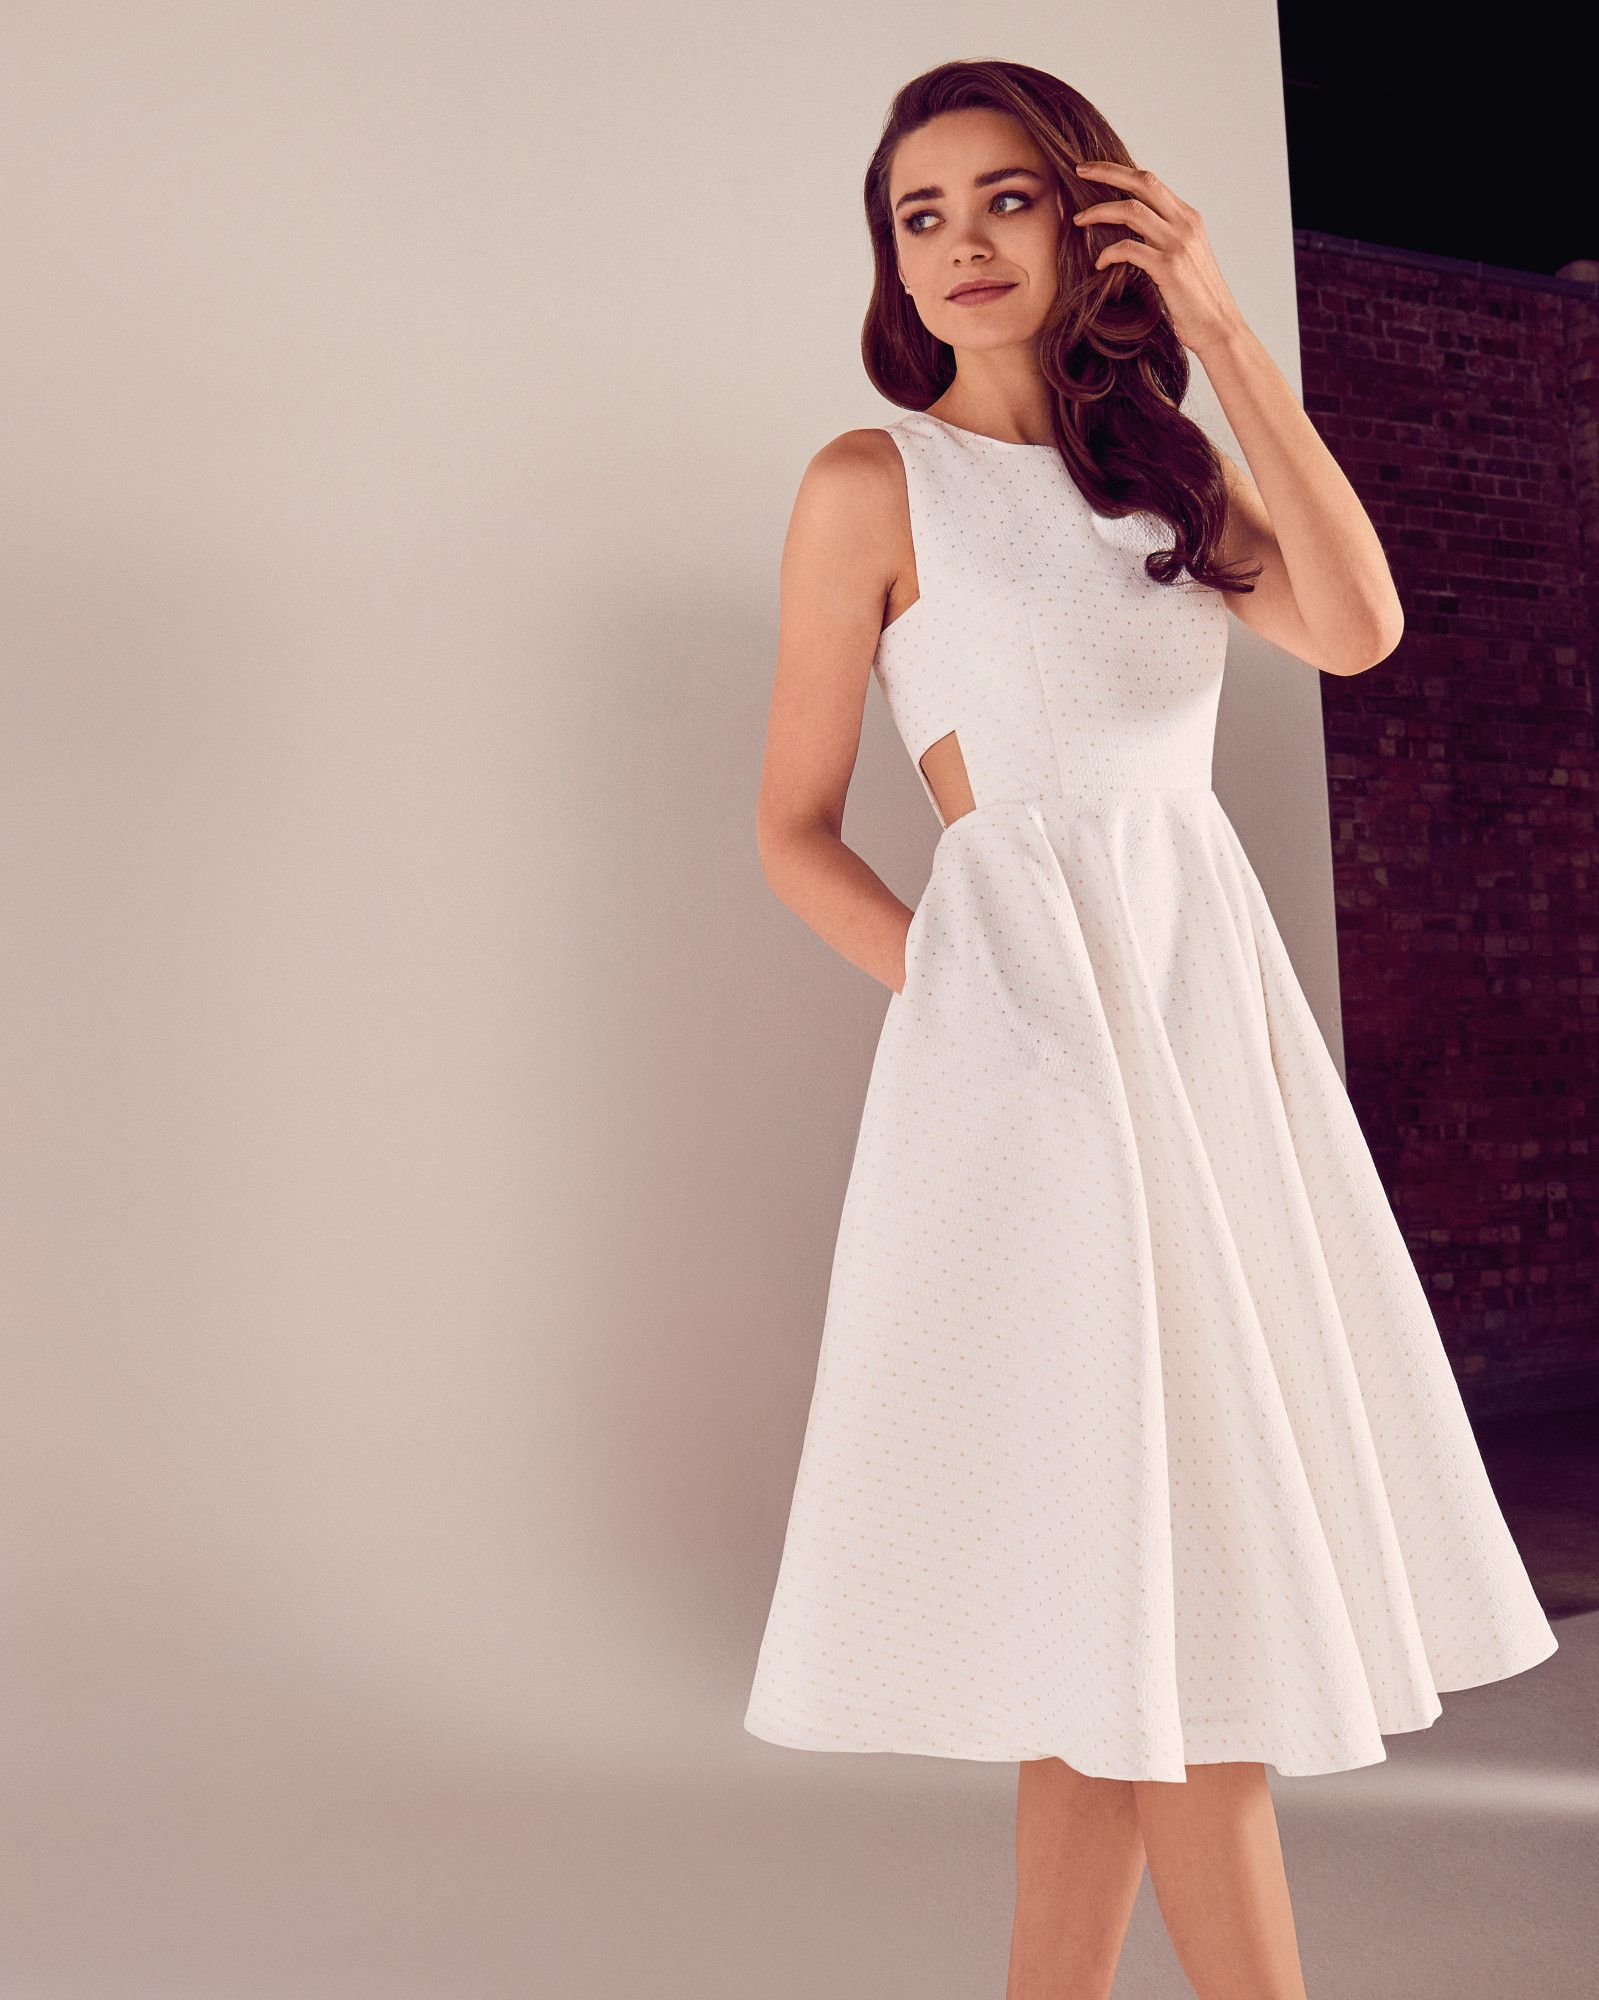 8e81d45f9d4 Daisy jacquard cut-out midi dress - White | SS17 Tie The Knot | Ted Baker  UK #WedWithTed @tedbaker